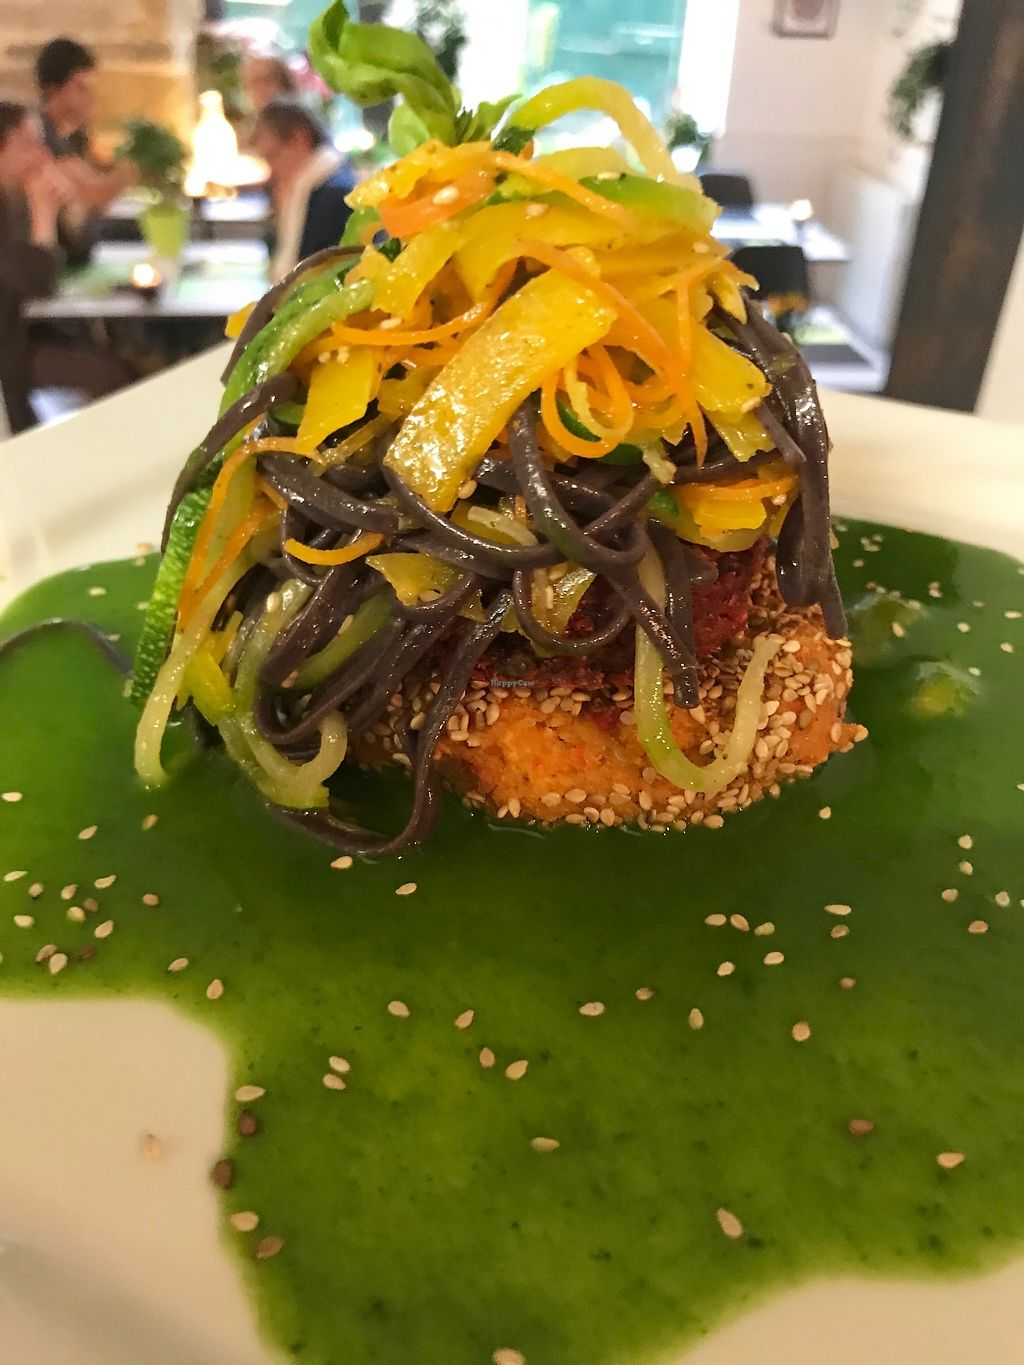 "Photo of Annadata  by <a href=""/members/profile/MyriamDomange"">MyriamDomange</a> <br/>Tofu capsicum burger with vegetable spaghetti, parsley sauce :-) <br/> August 5, 2017  - <a href='/contact/abuse/image/97804/288936'>Report</a>"